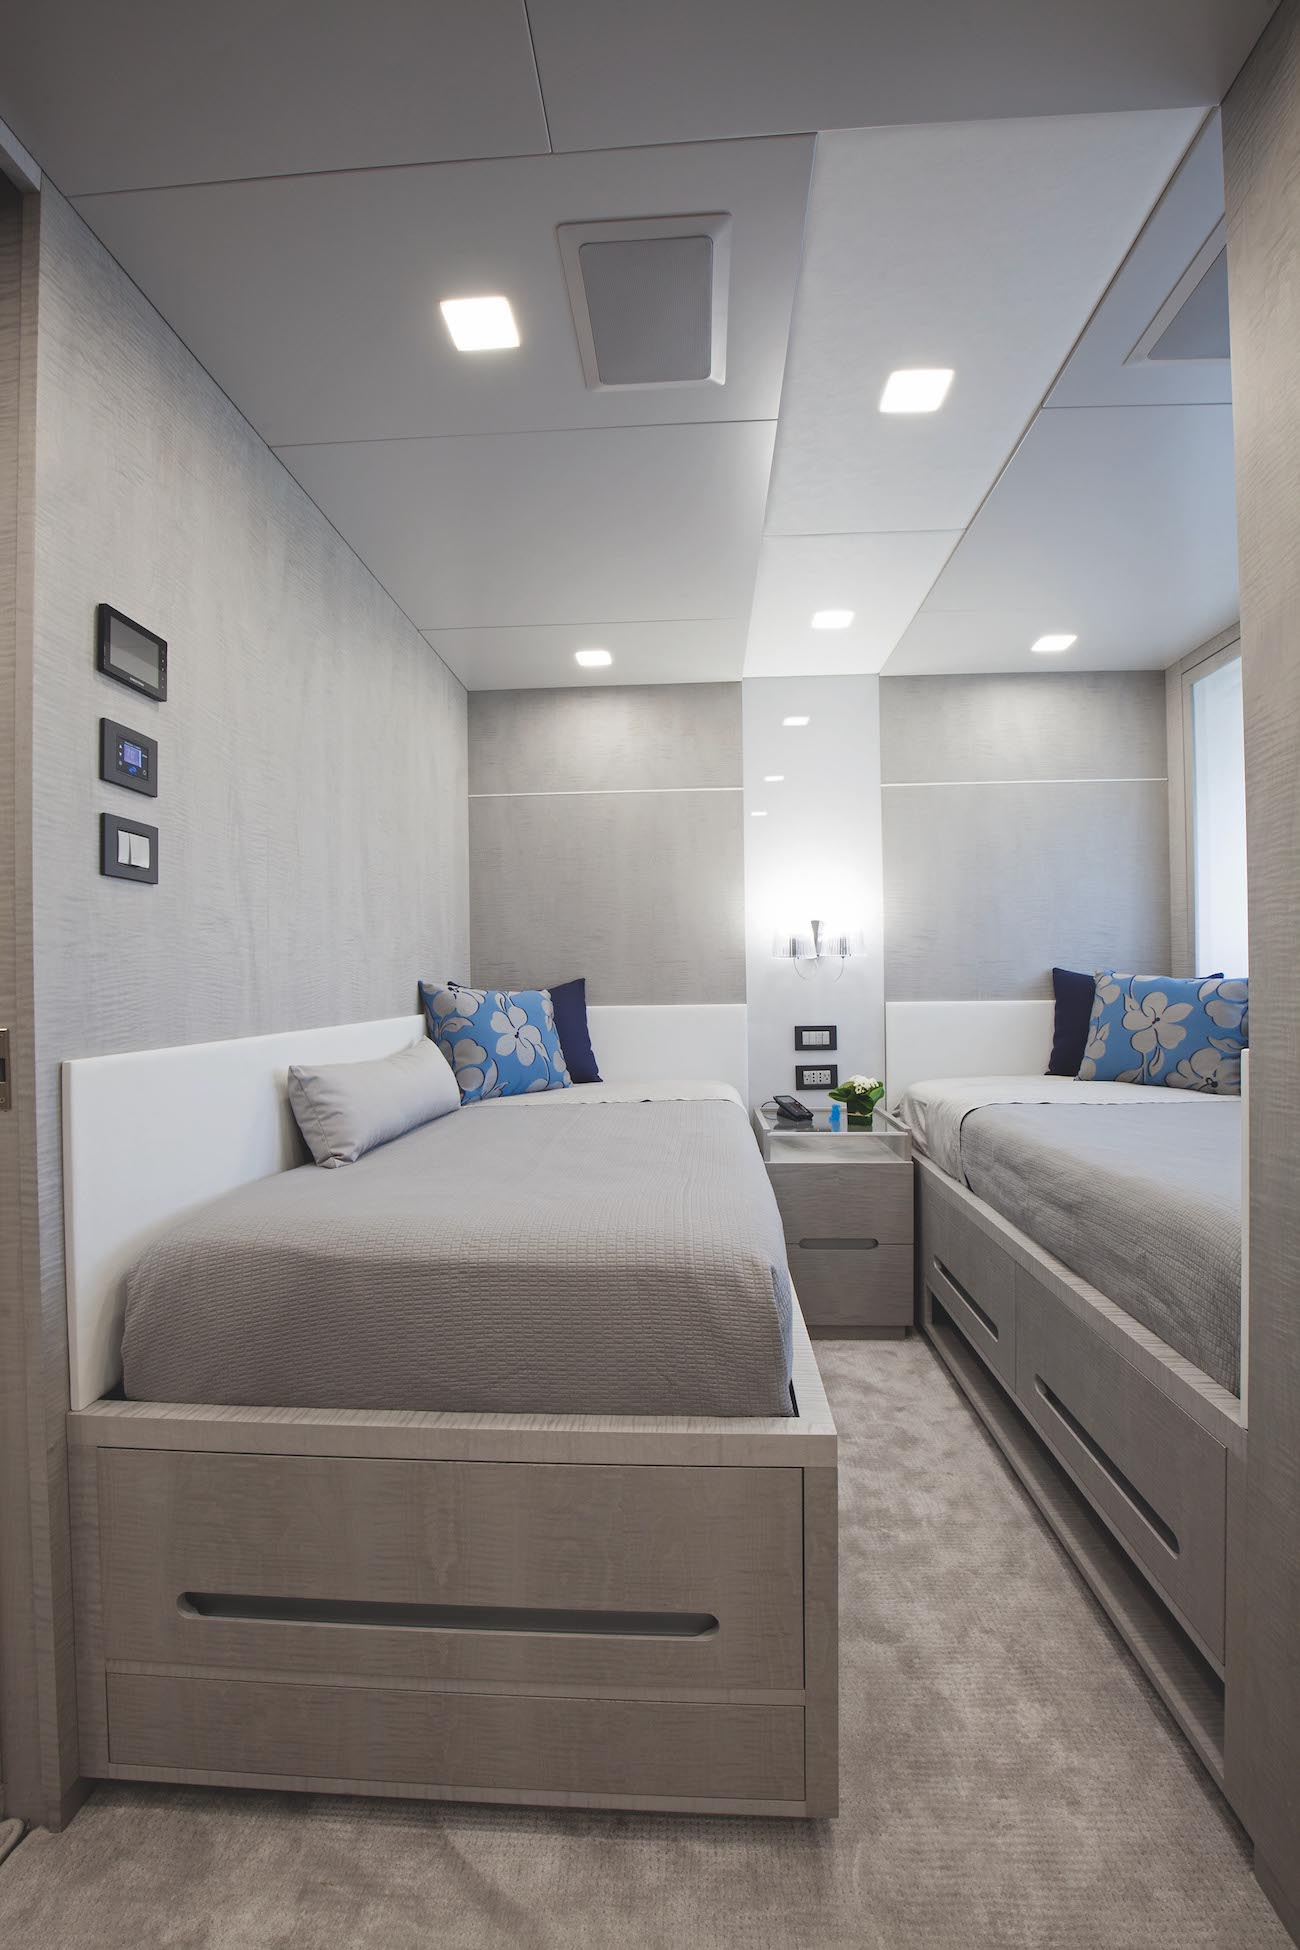 Twin Guest Stateroom On The Lower Deck